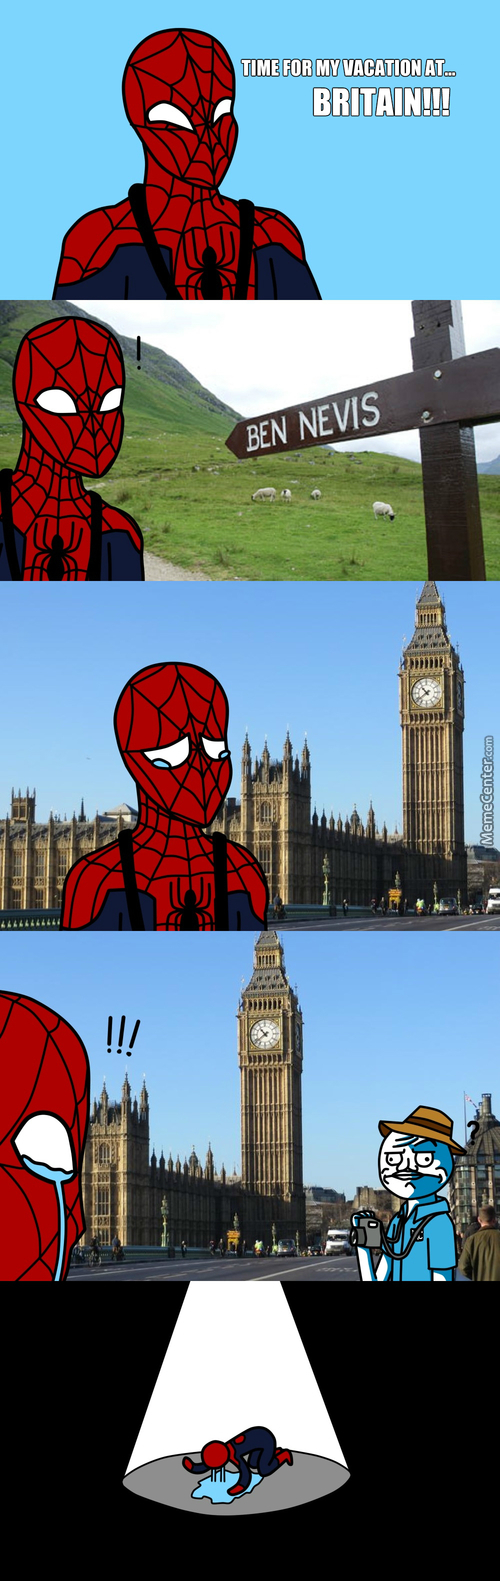 Spiderman's Ultimate Vacation!